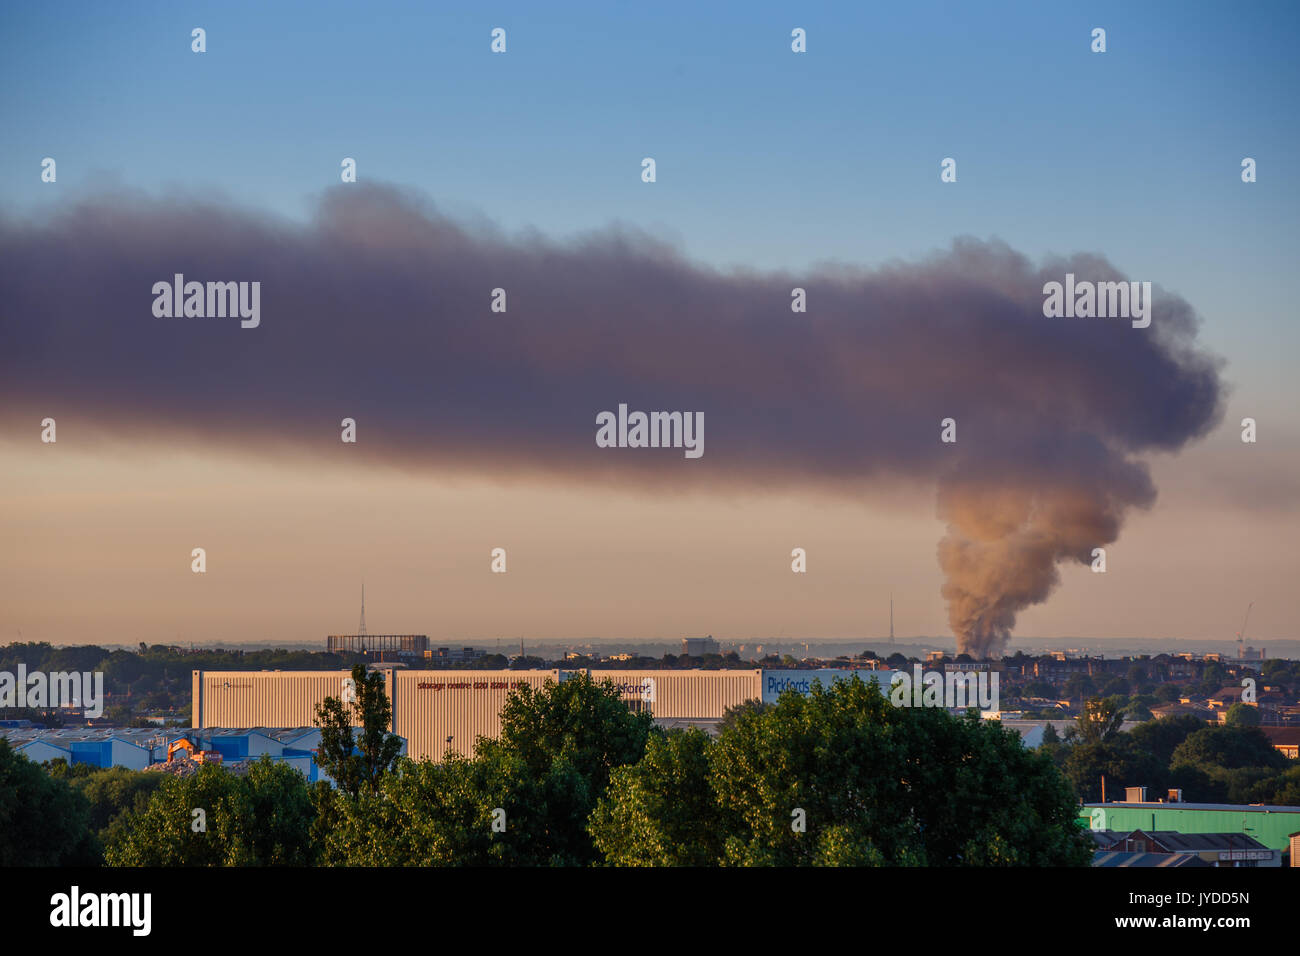 Smoke from the Grenfell Tower fire fills the skyline, Crystal Palace and Croydon Transmitters visible in the background. Photograph taken from Wembley - Stock Image